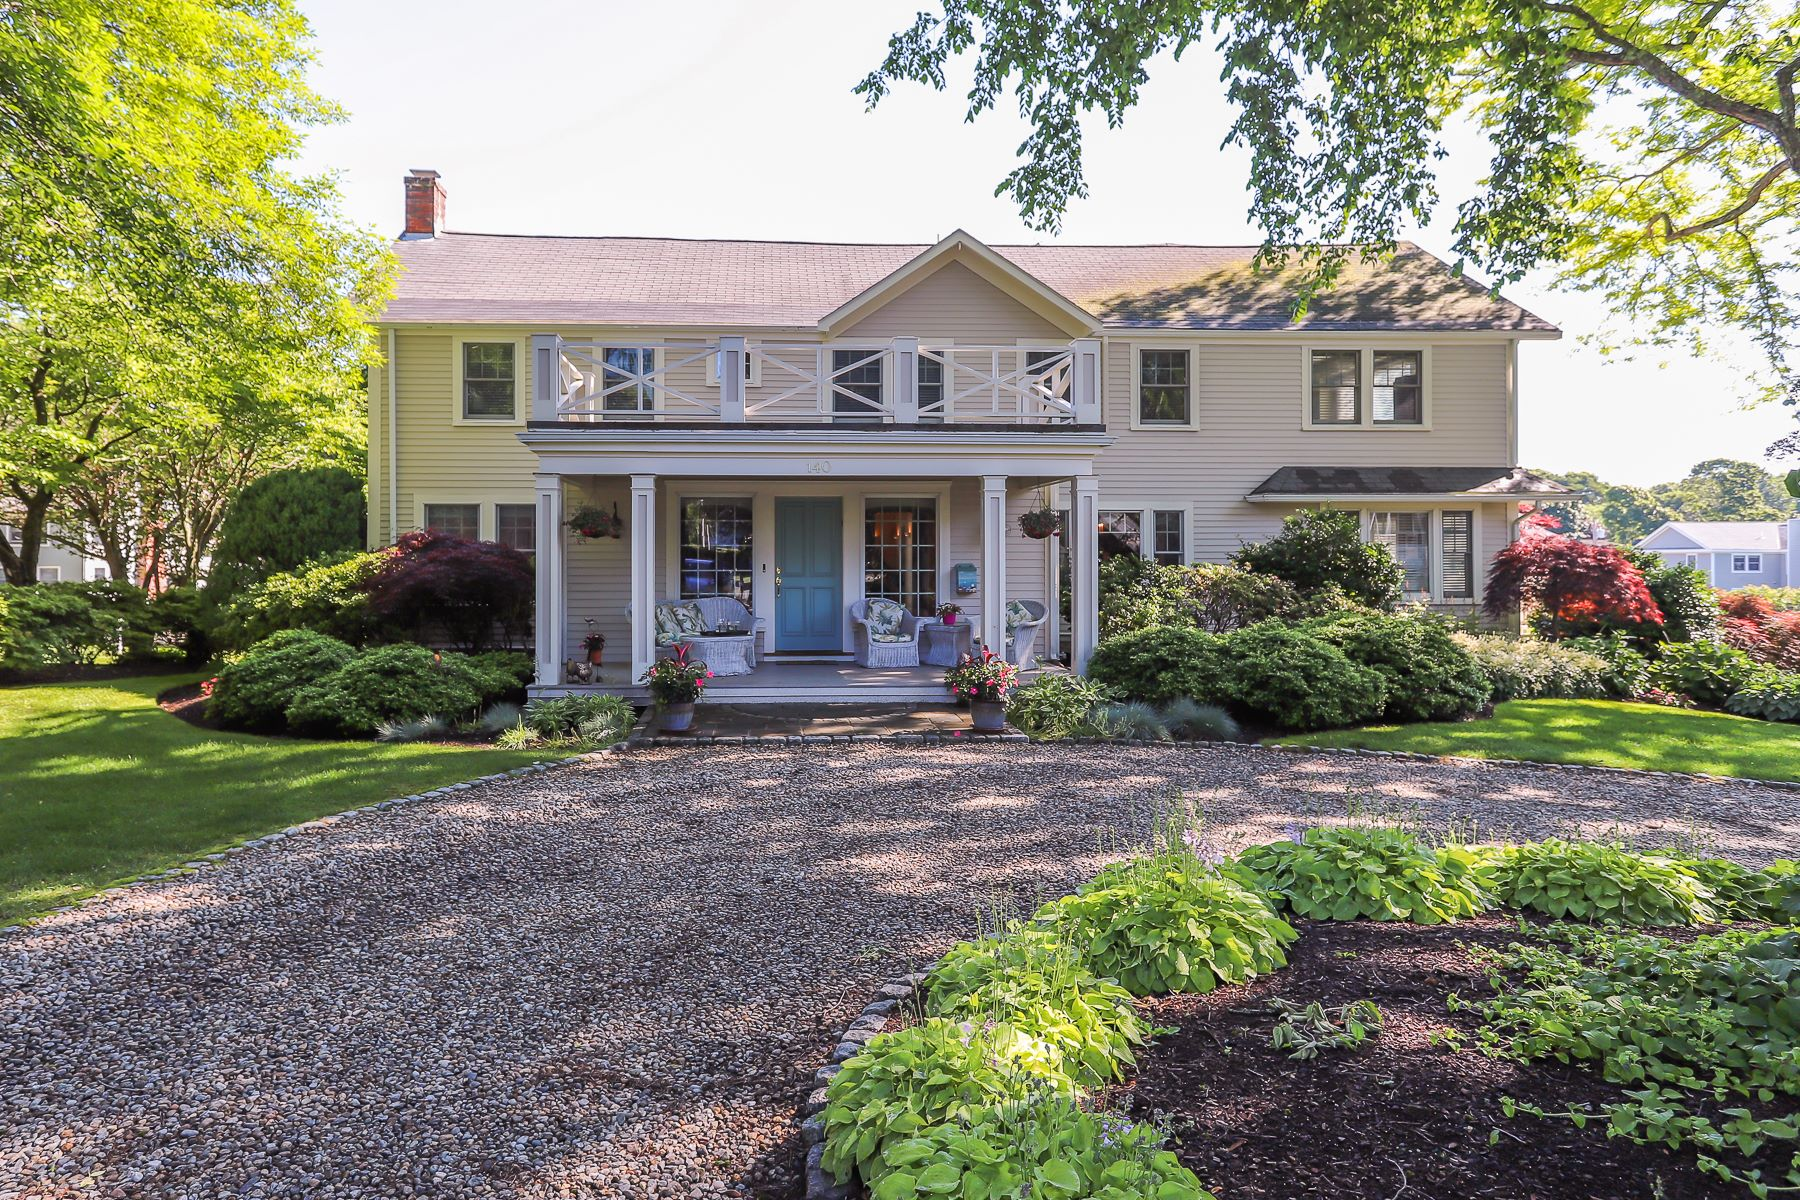 Single Family Home for Active at Elegant colonial a stone's throw from beach 140 Beach Bluff Avenue Swampscott, Massachusetts 01907 United States